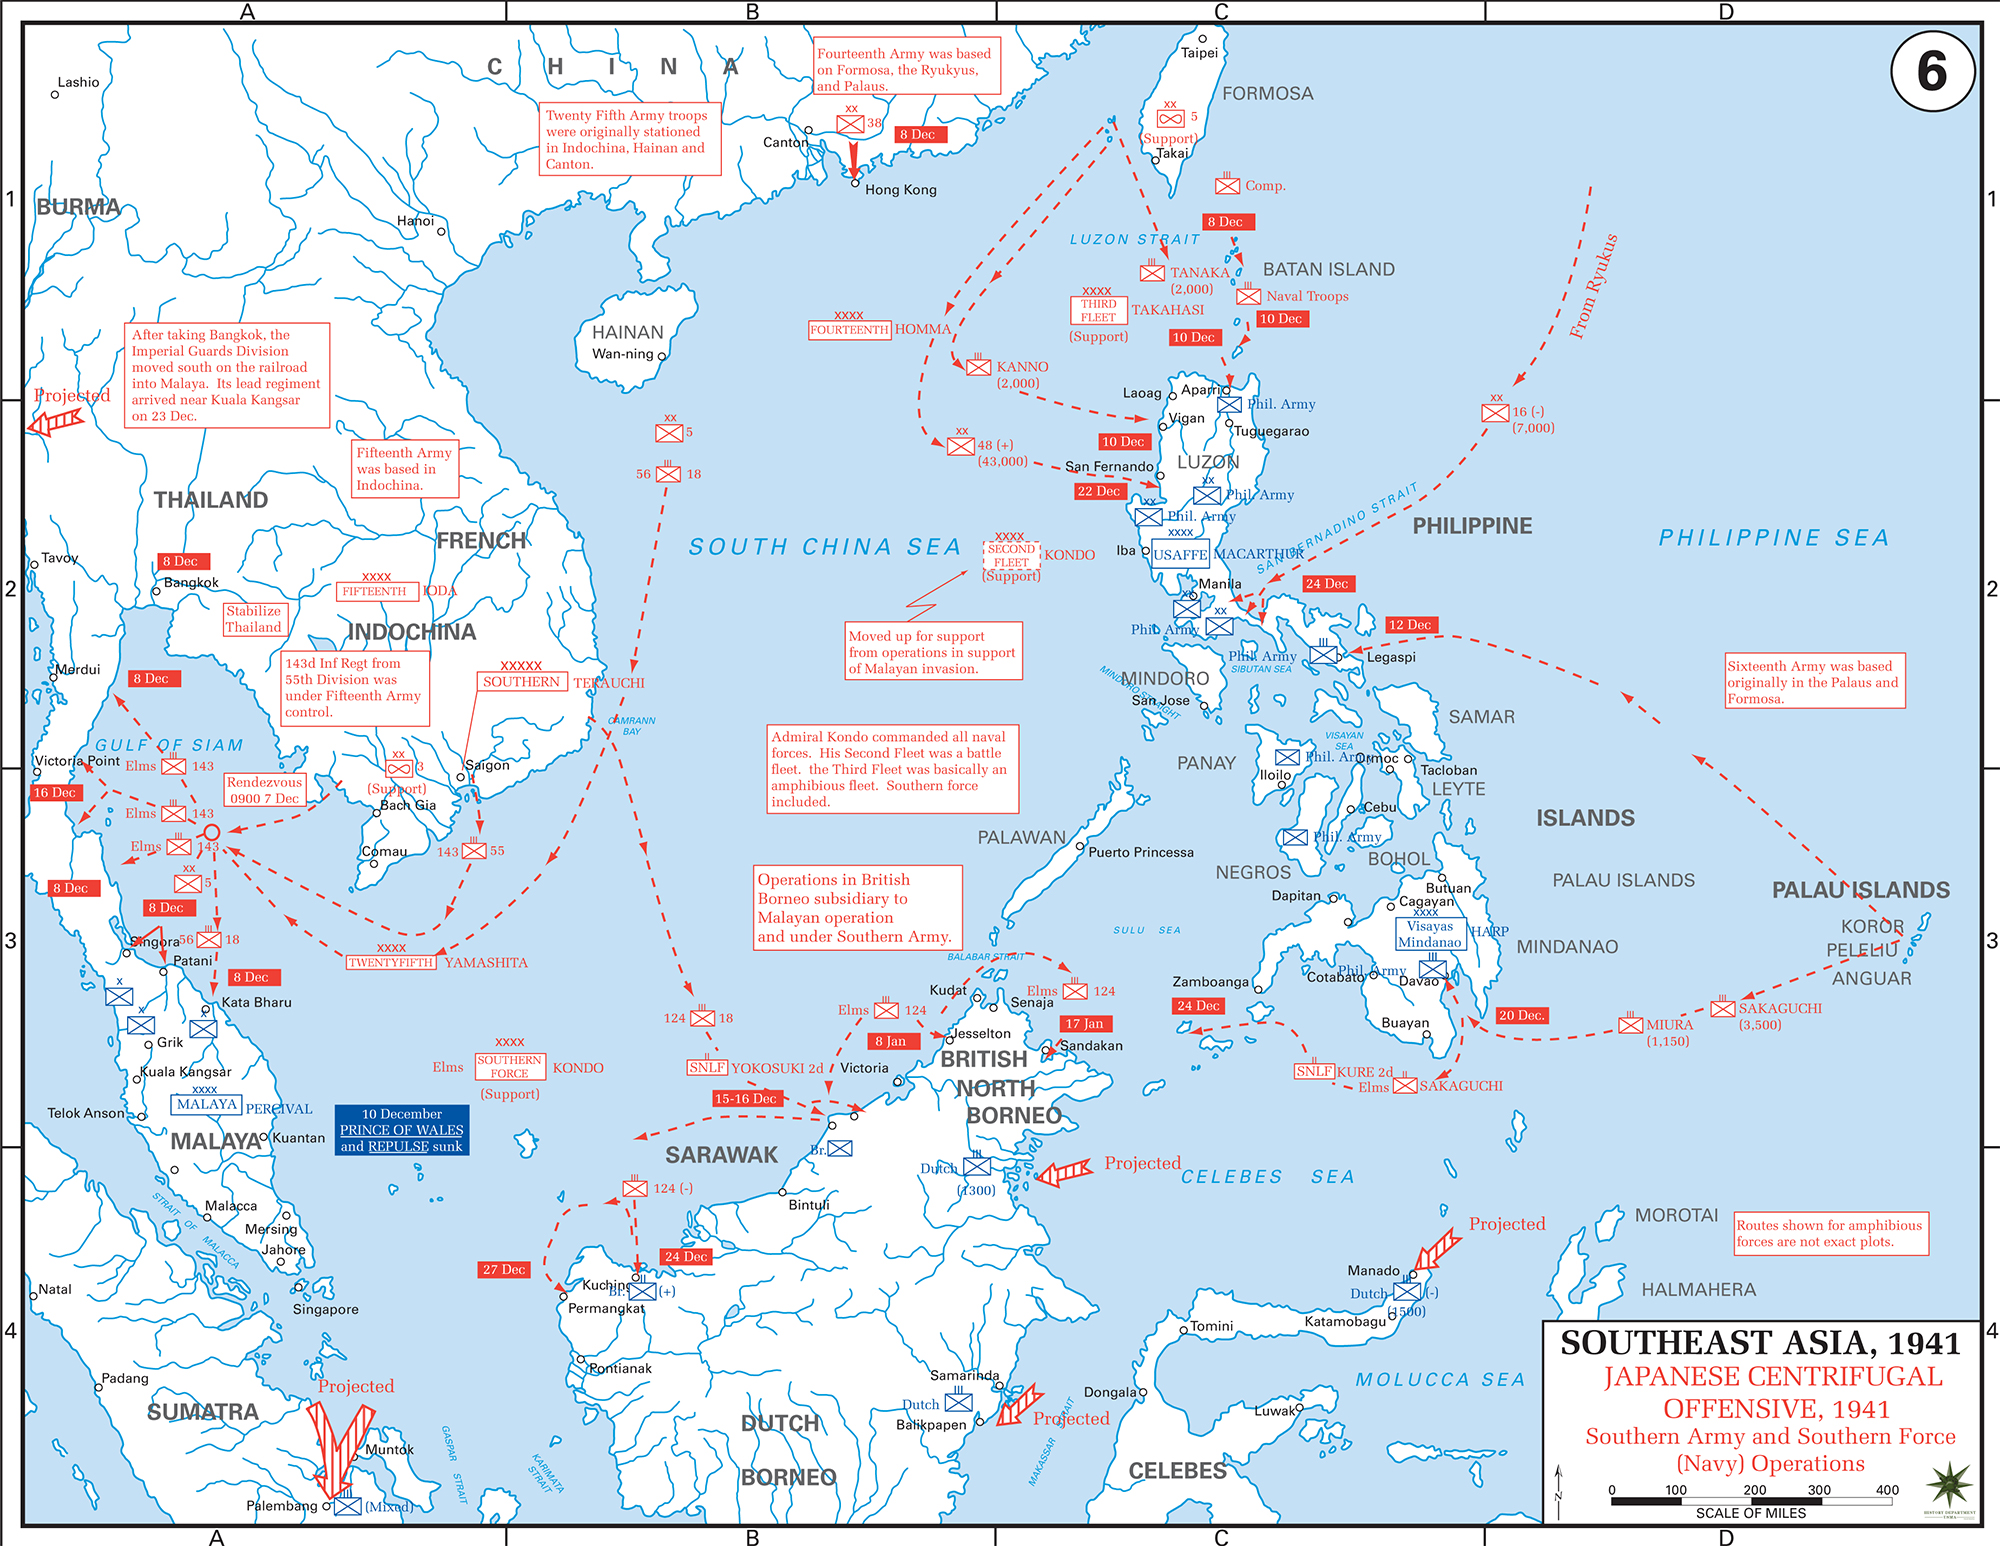 Picture of: Map Of Wwii Japanese Offensive 1941 Southeast Asia